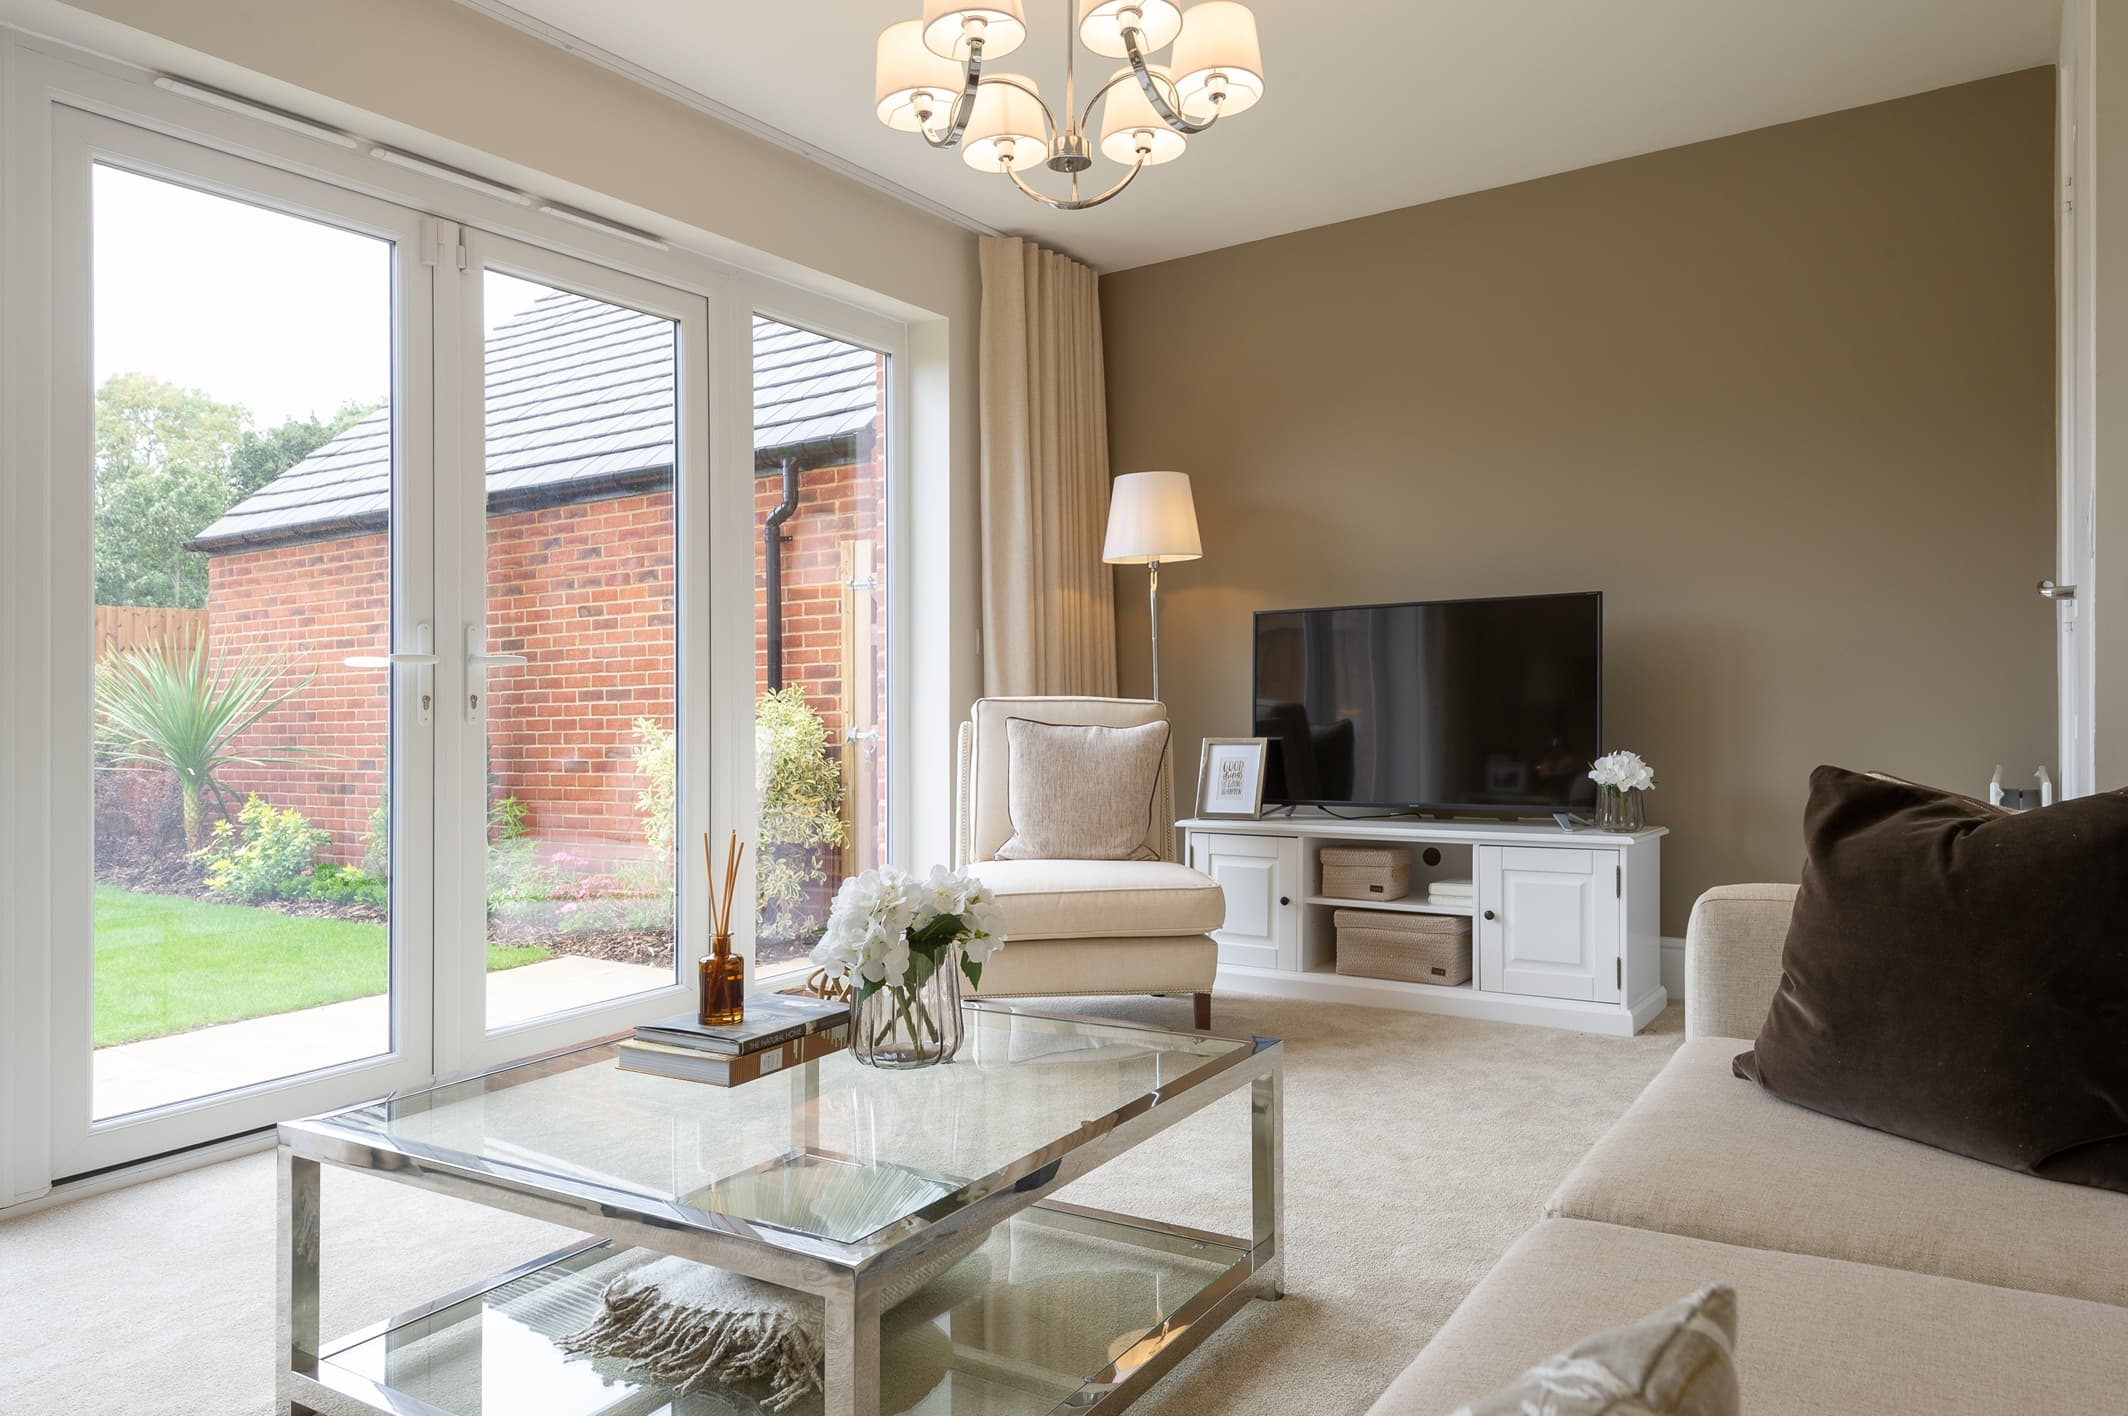 Key Colour Trends For Interior Design In 2019 Property Blog